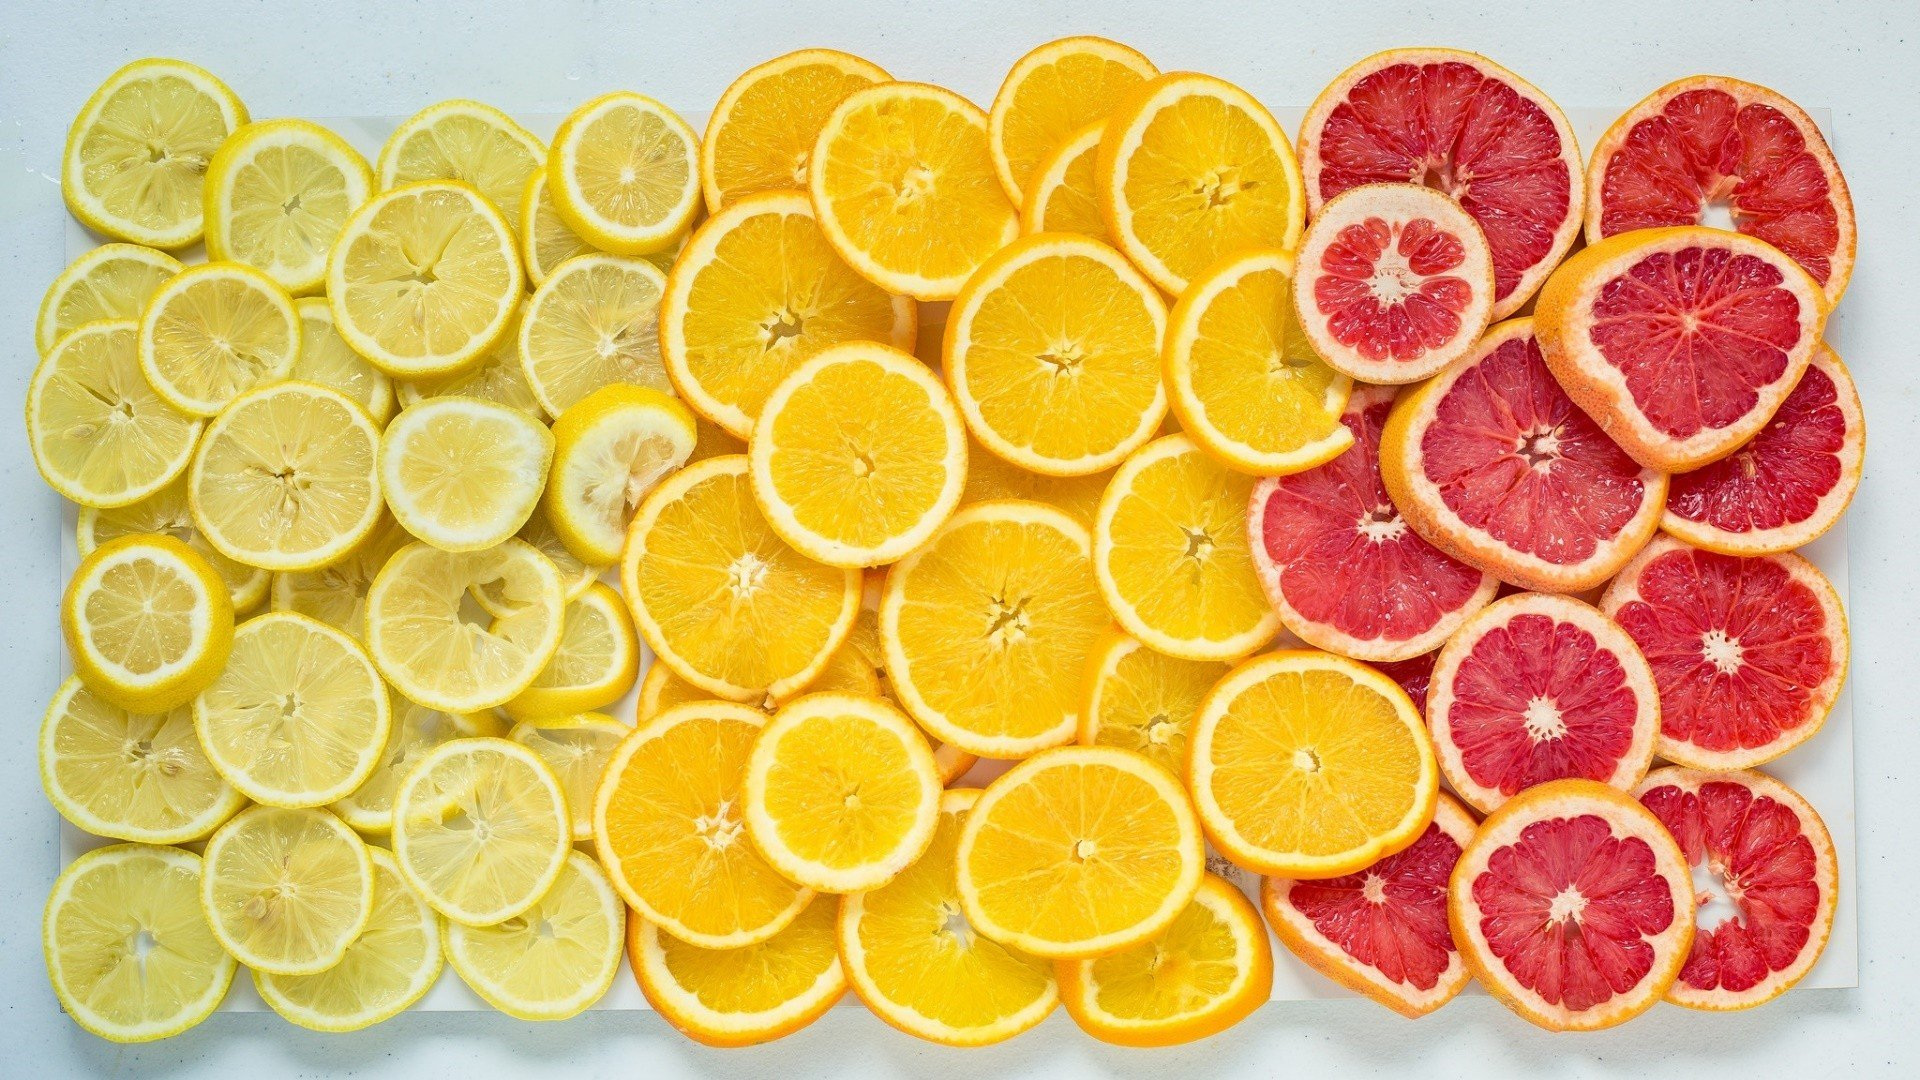 473716 orange fruit lemons grapefruits food